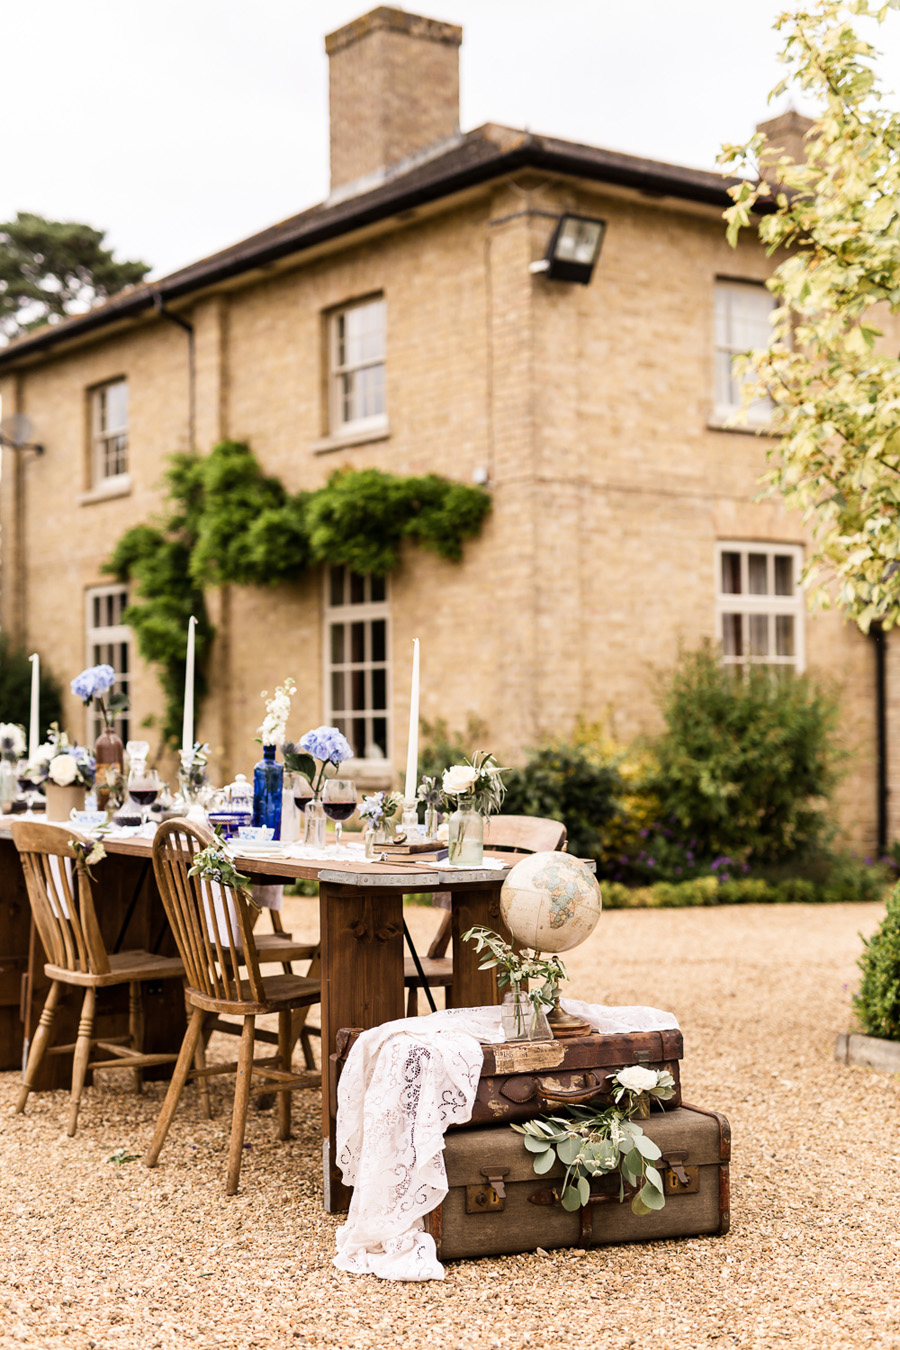 Cambridgeshire venue Lattenbury Hill wedding style ideas. Images by Sarah Brookes Photography (23)